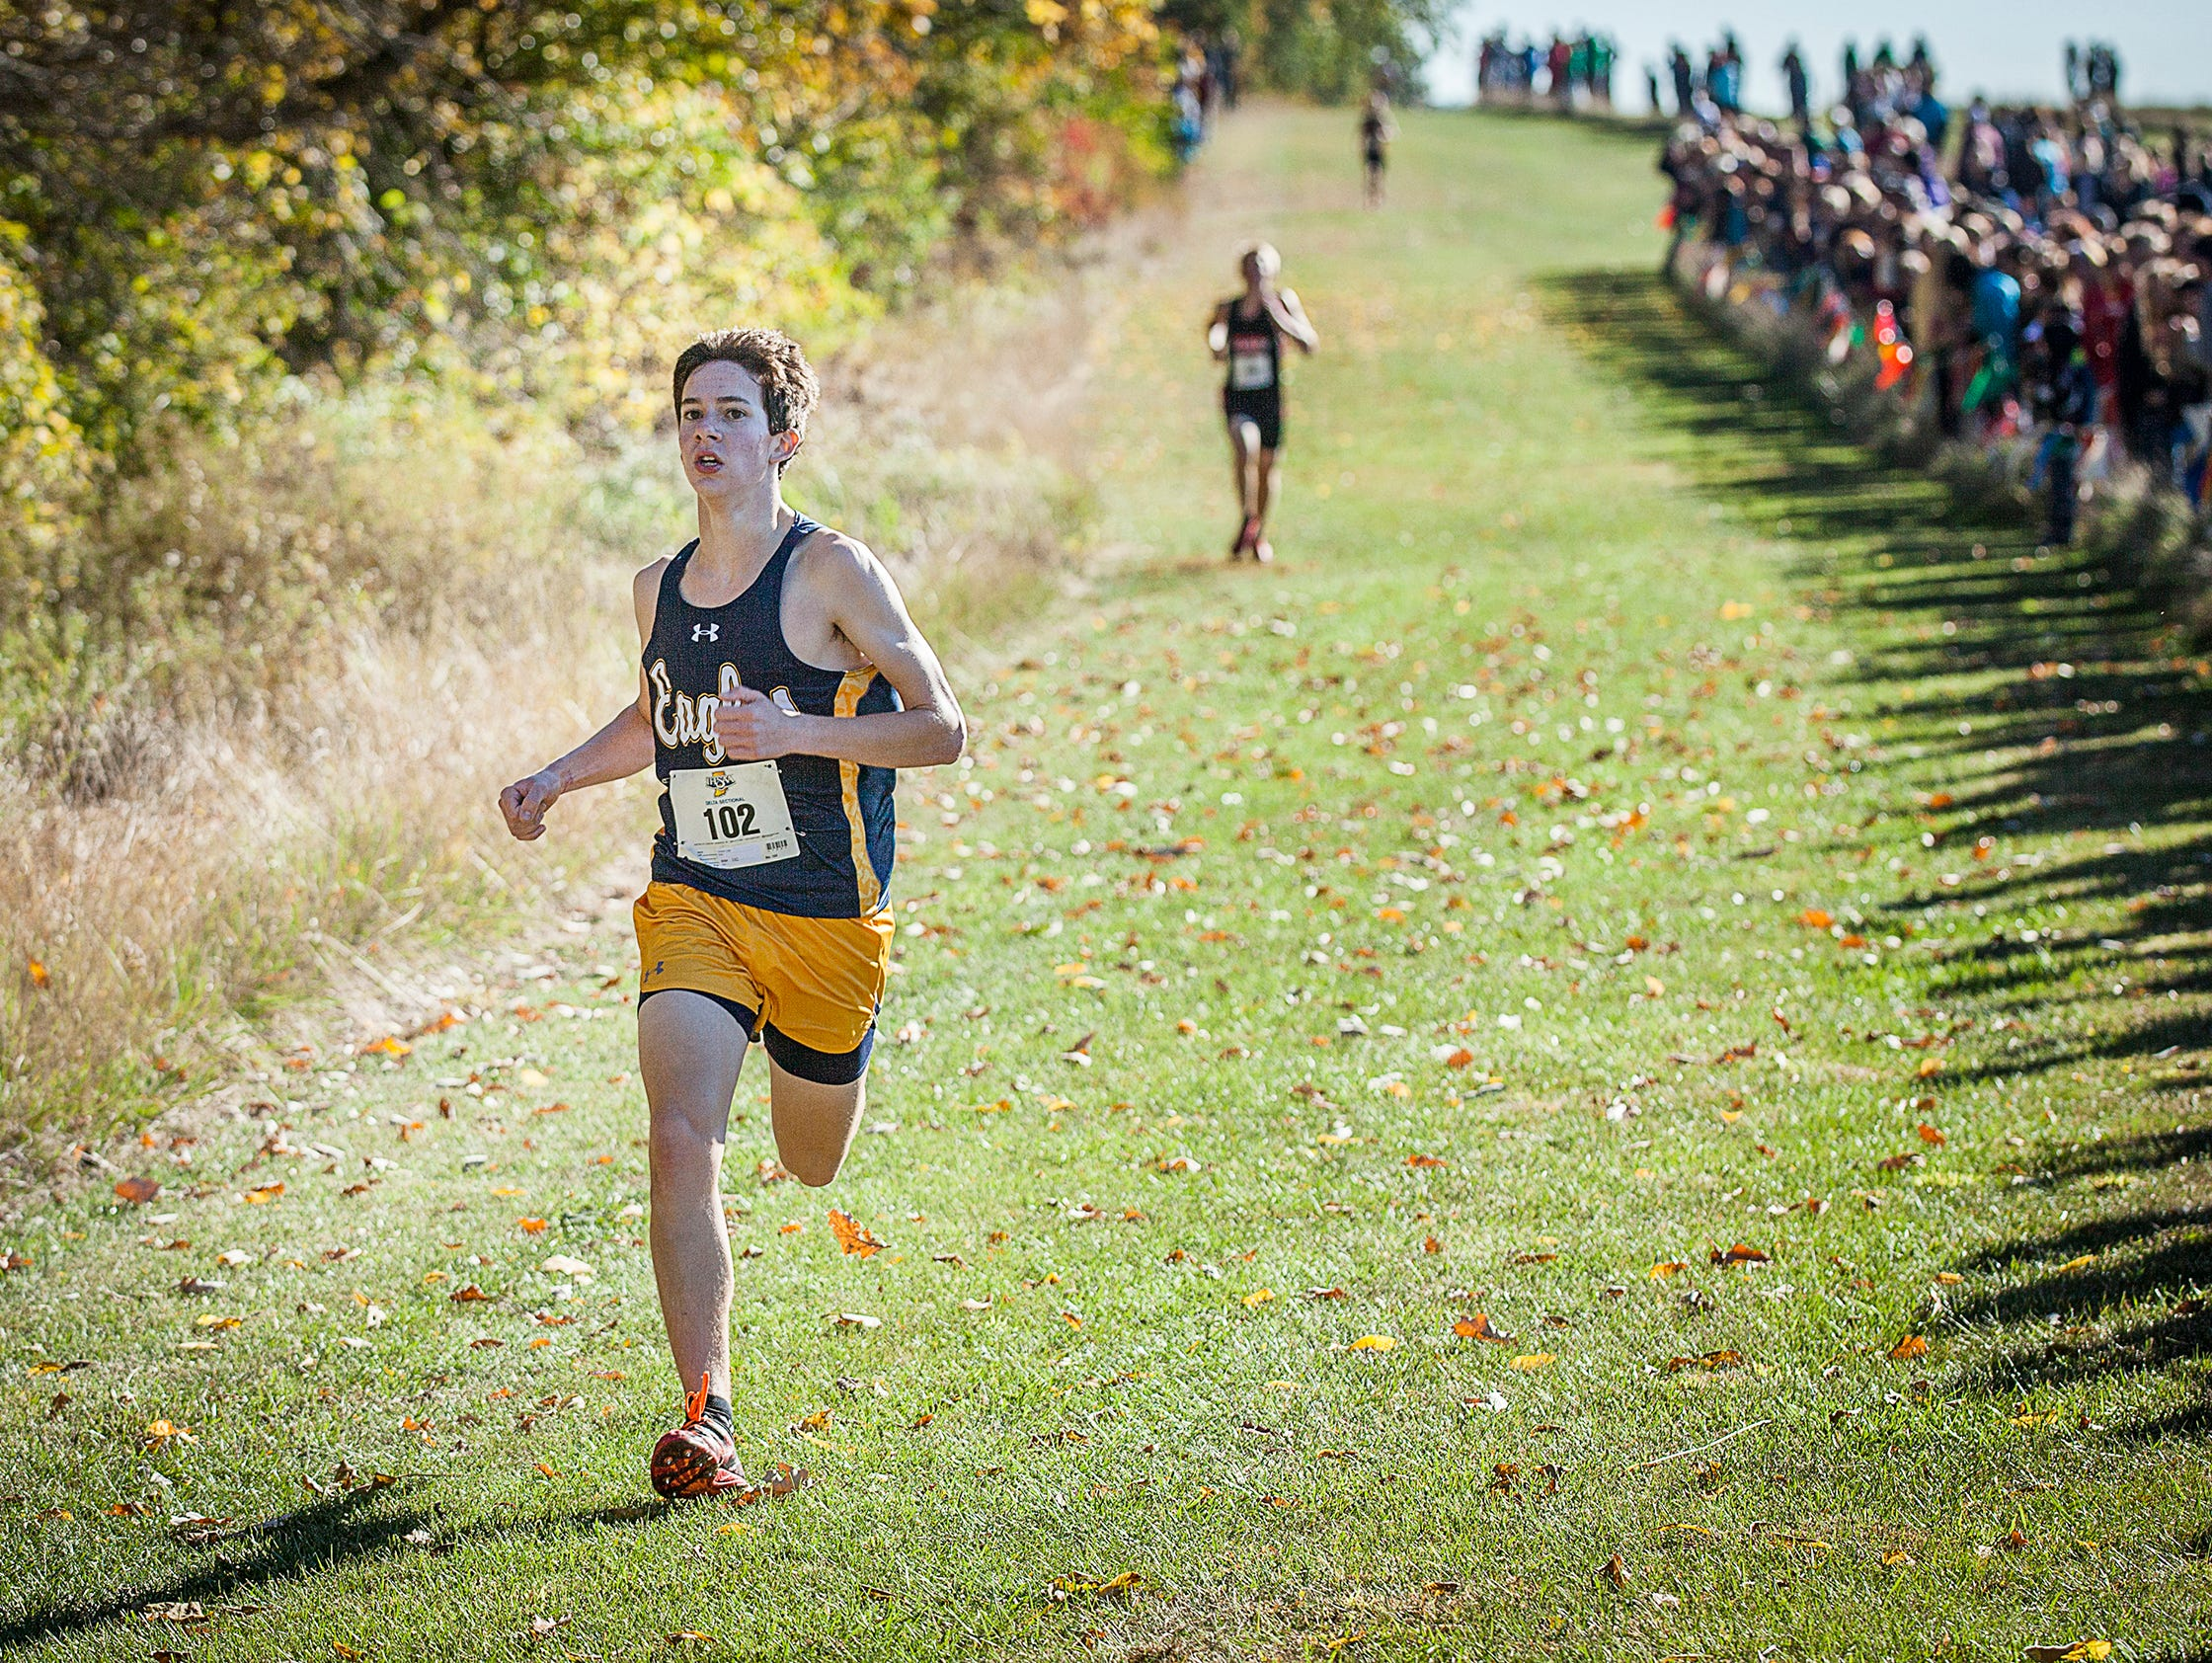 Cade Orchard finished first for Delta during the cross country sectional at the Sportsplex in Muncie on Saturday, Oct. 10, 2015.